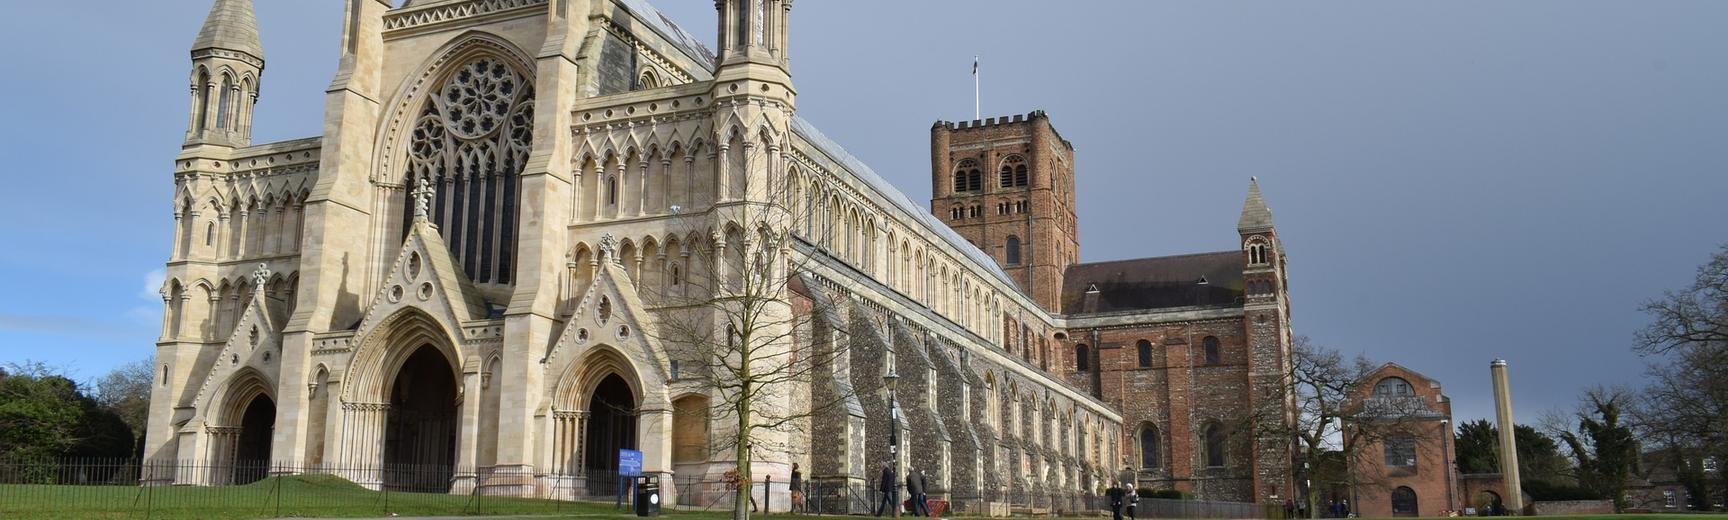 The exterior of St Albans Cathedral